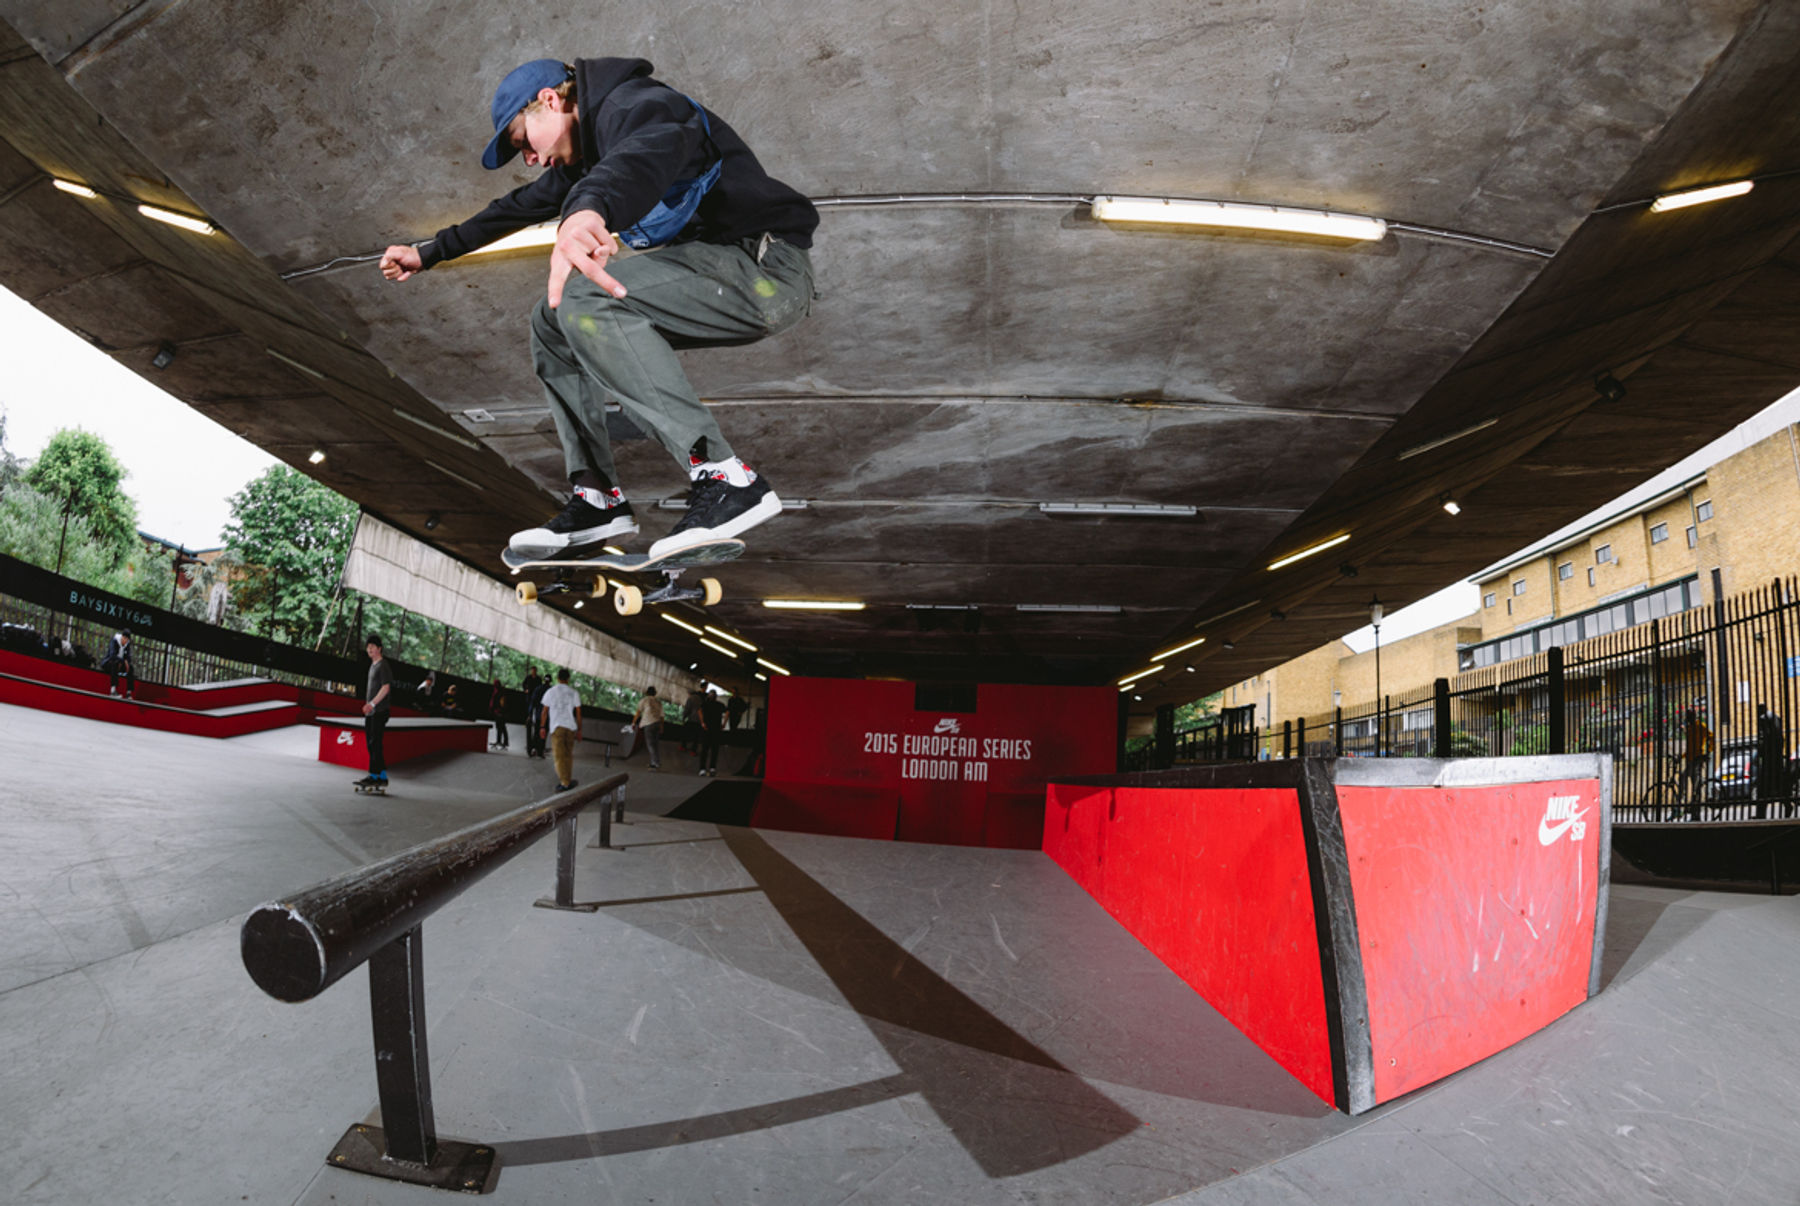 _IHC4992e-Ville-Wester-Wall-Jam-To-Ollie-Over-The-Rail-Nike-SB-London-AM-Day-2-June-2015-Photographer-Maksim-Kalanep